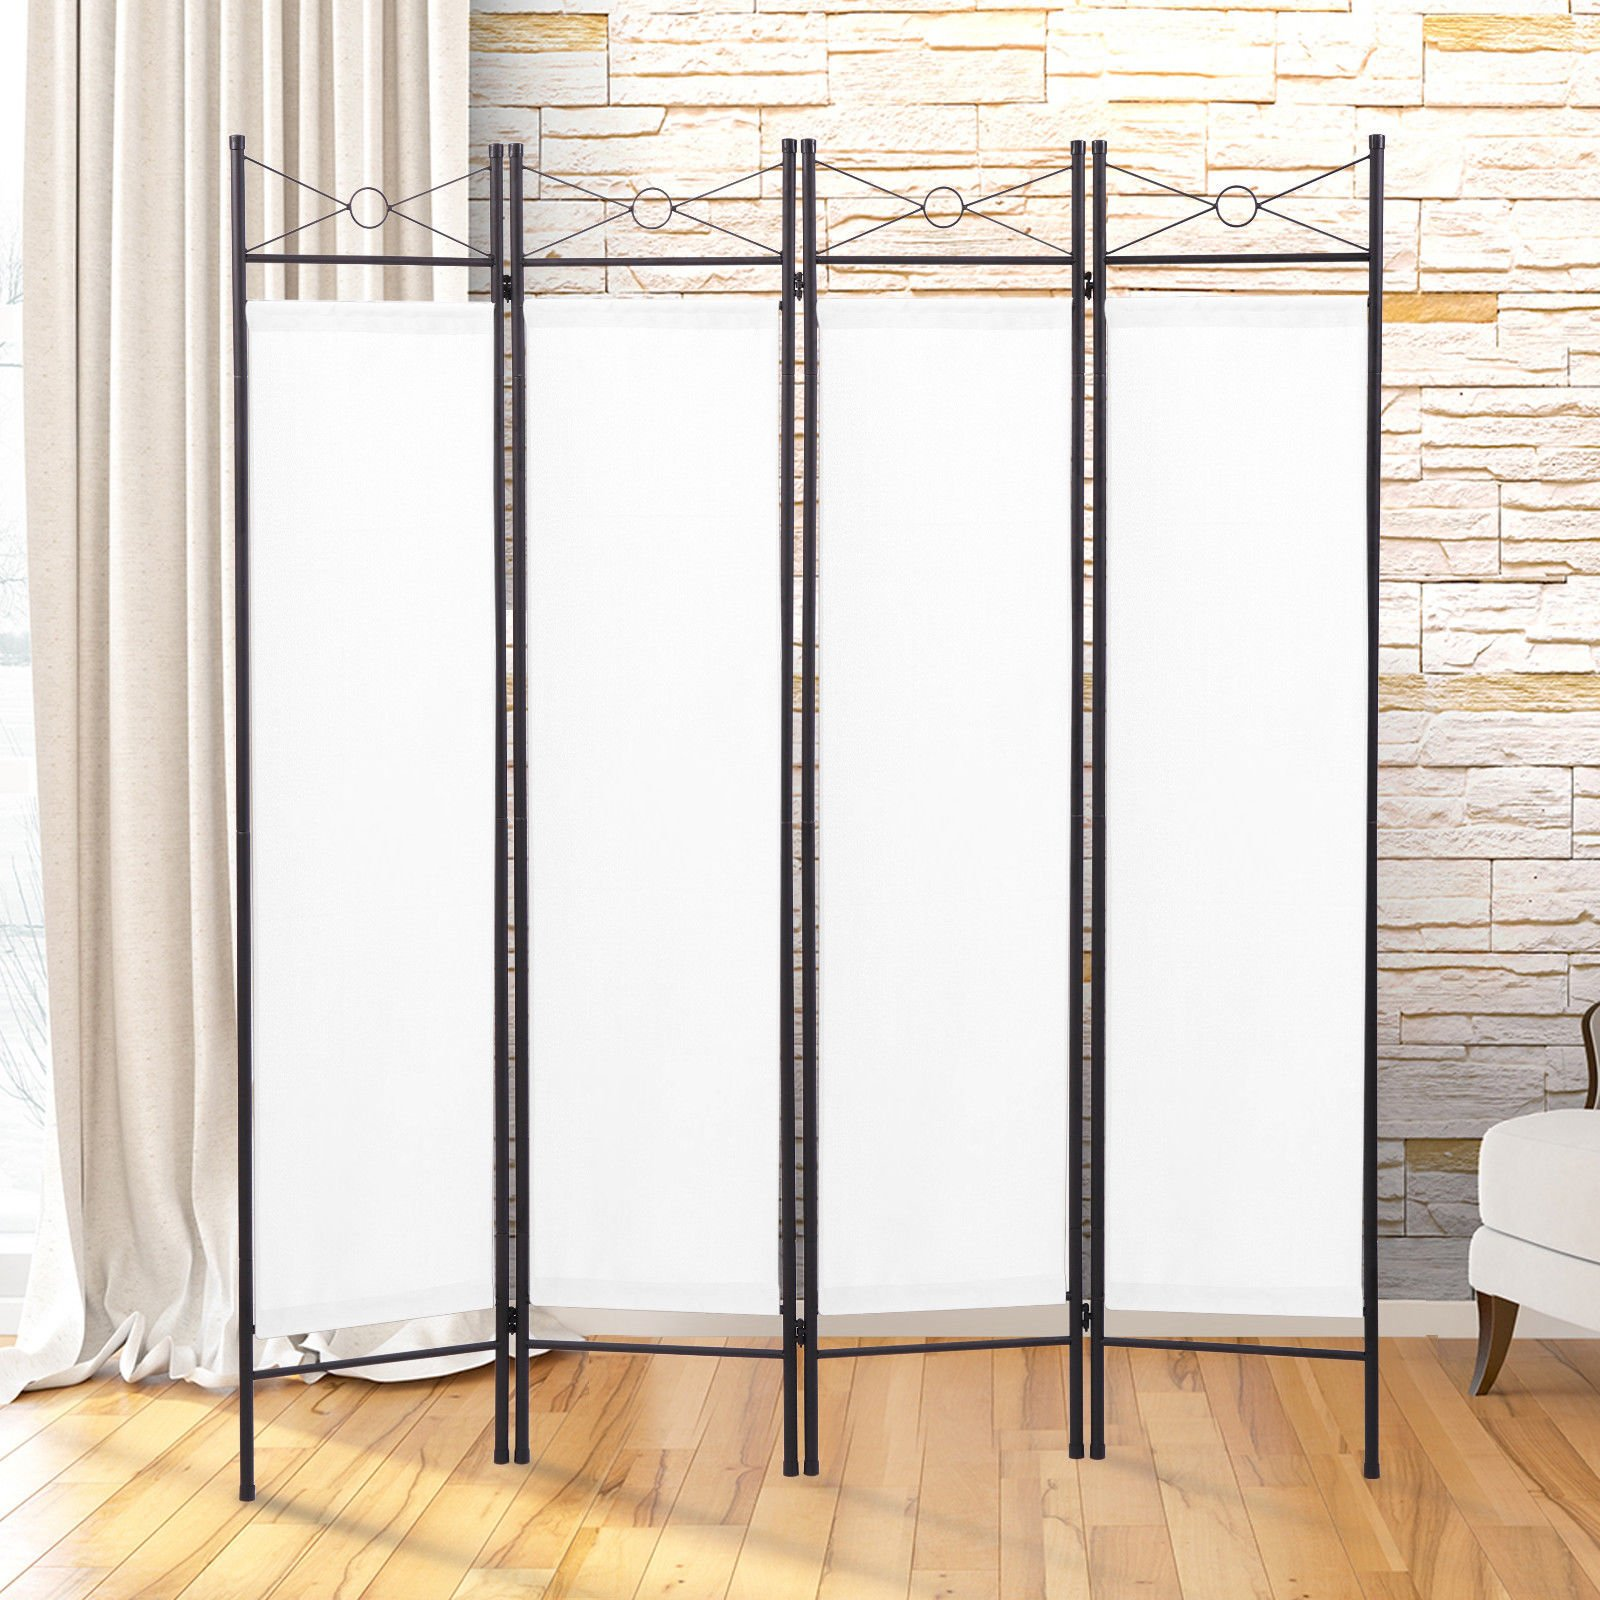 LAZYMOON White Room Divider 4-Panel Steel Screen Fabric Folding Partition Home Office Privacy Screen